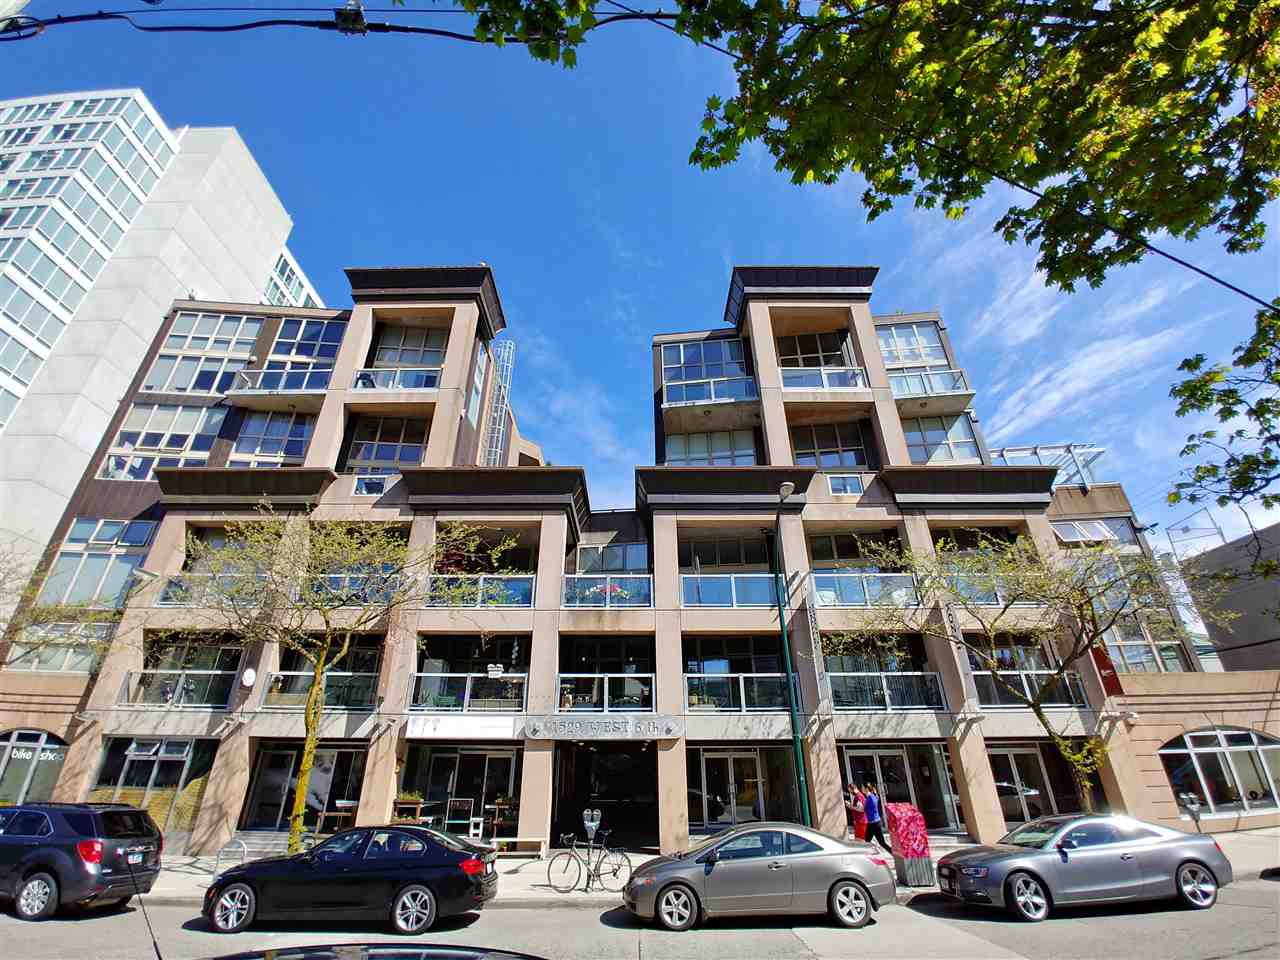 Main Photo: 318 1529 W 6TH Avenue in Vancouver: False Creek Condo for sale (Vancouver West)  : MLS®# R2264614